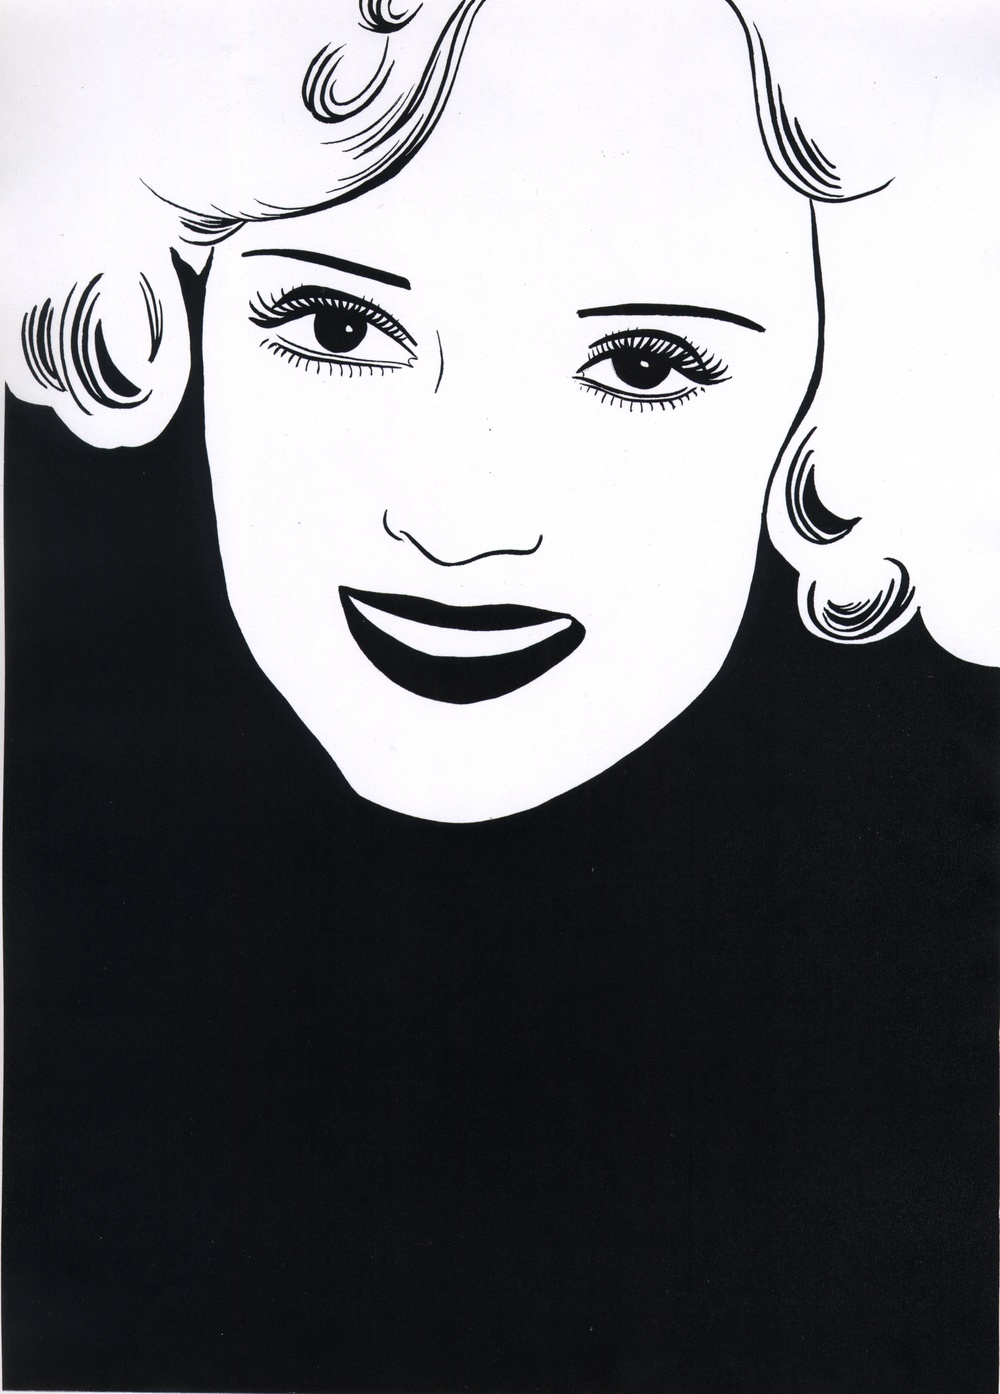 The wife was charming   2010   Ink on paper   42 x 29.7 cm / 16.5 x 11.6 in,   47 x 34.5 cm / 18.5 x 13.5 in framed